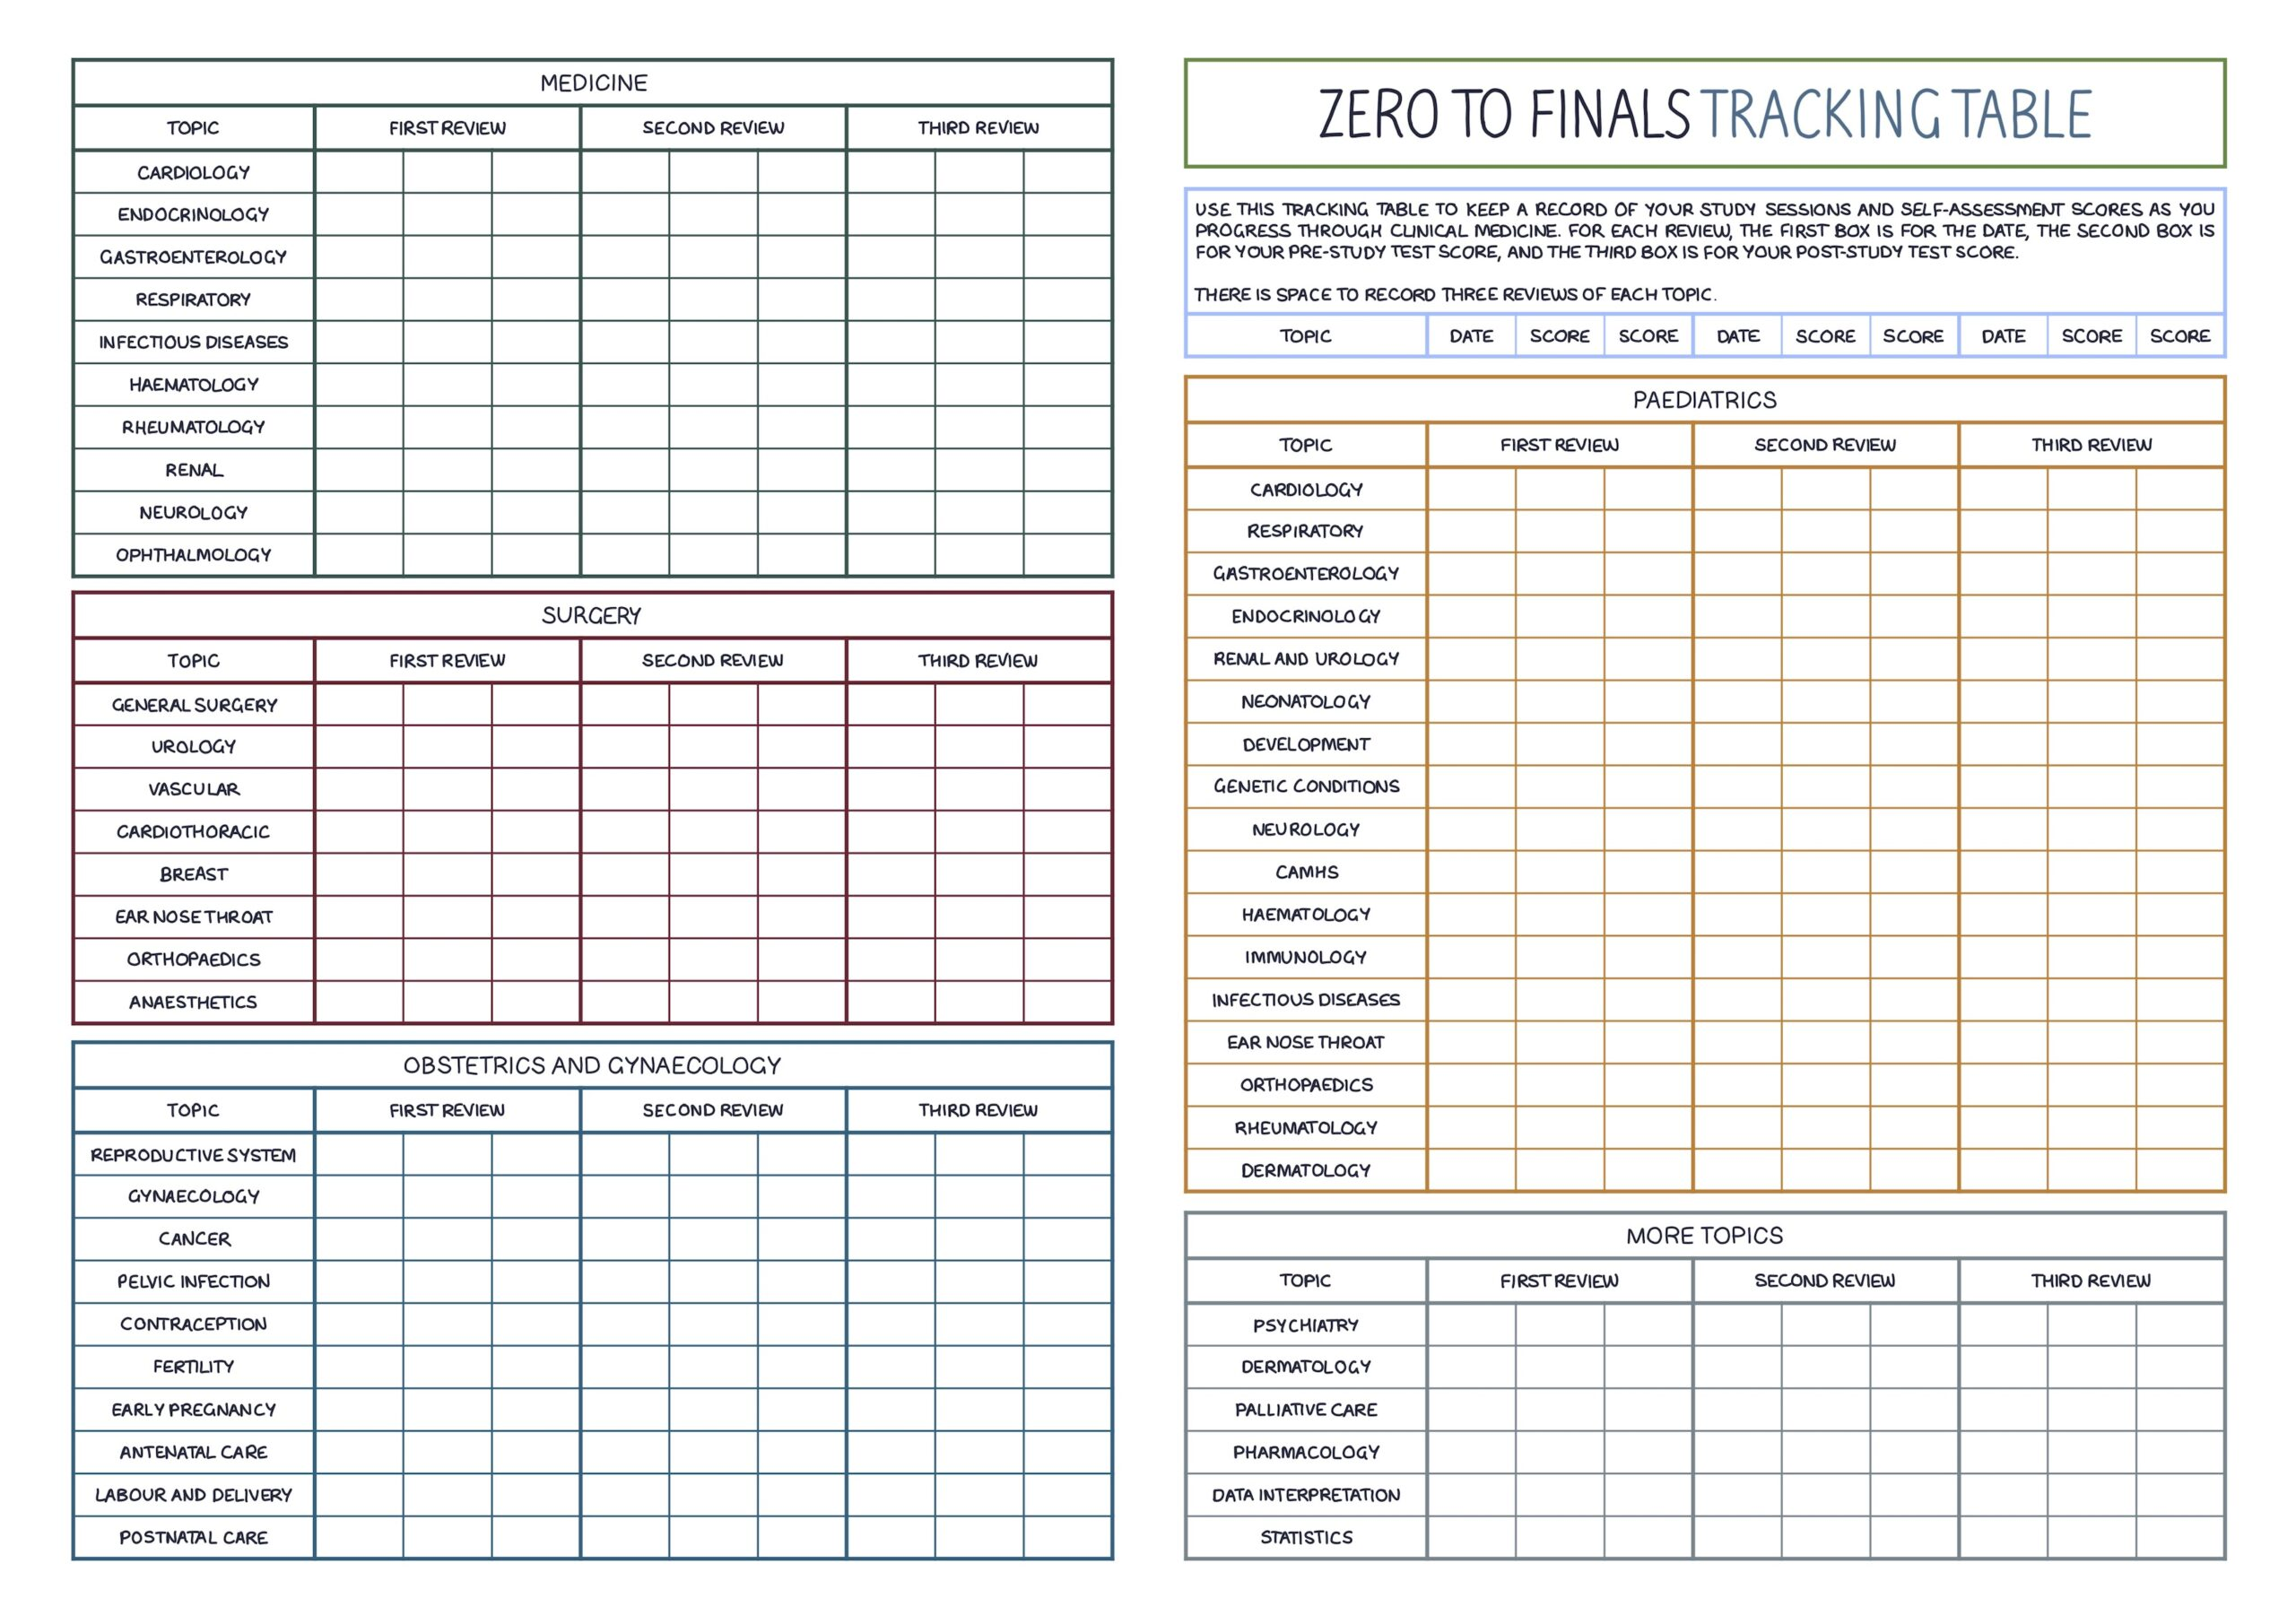 A3 Tracking Table